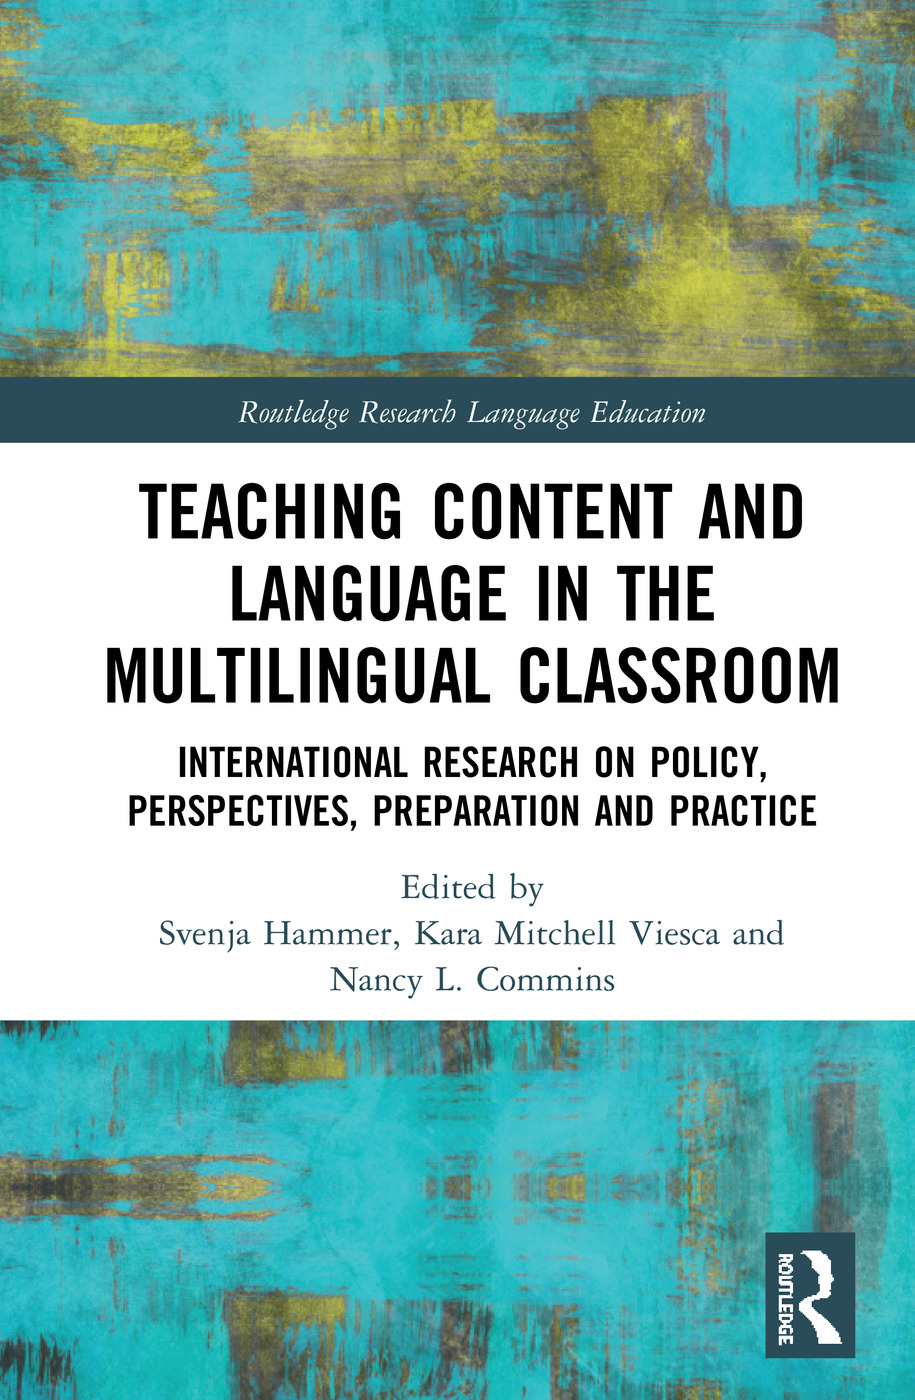 Teaching Content and Language in the Multilingual Classroom: International Research on Policy, Perspectives, Preparation and Practice book cover